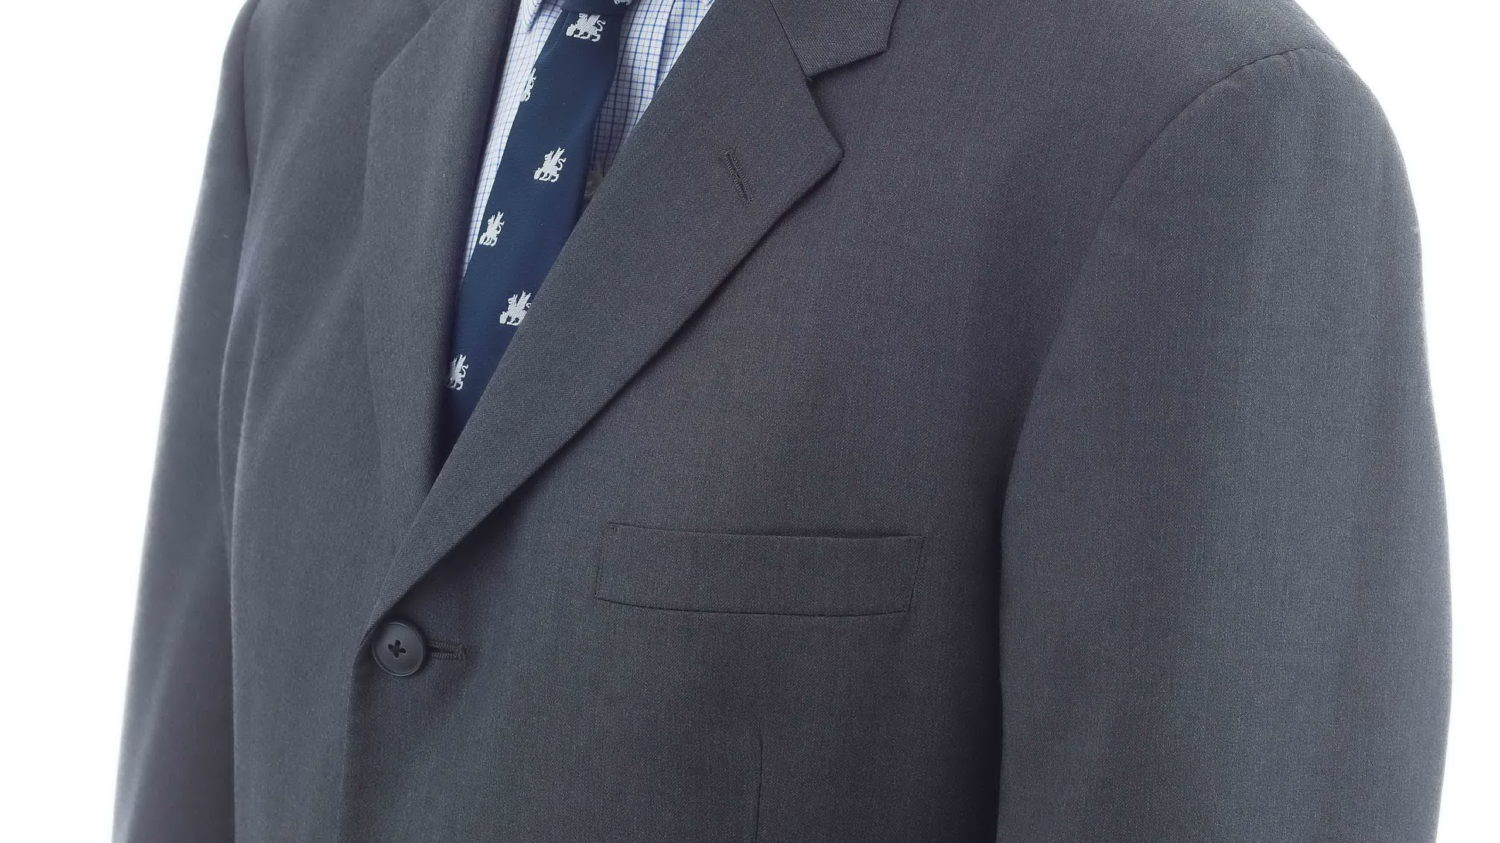 Cheap Suit without lapel roll